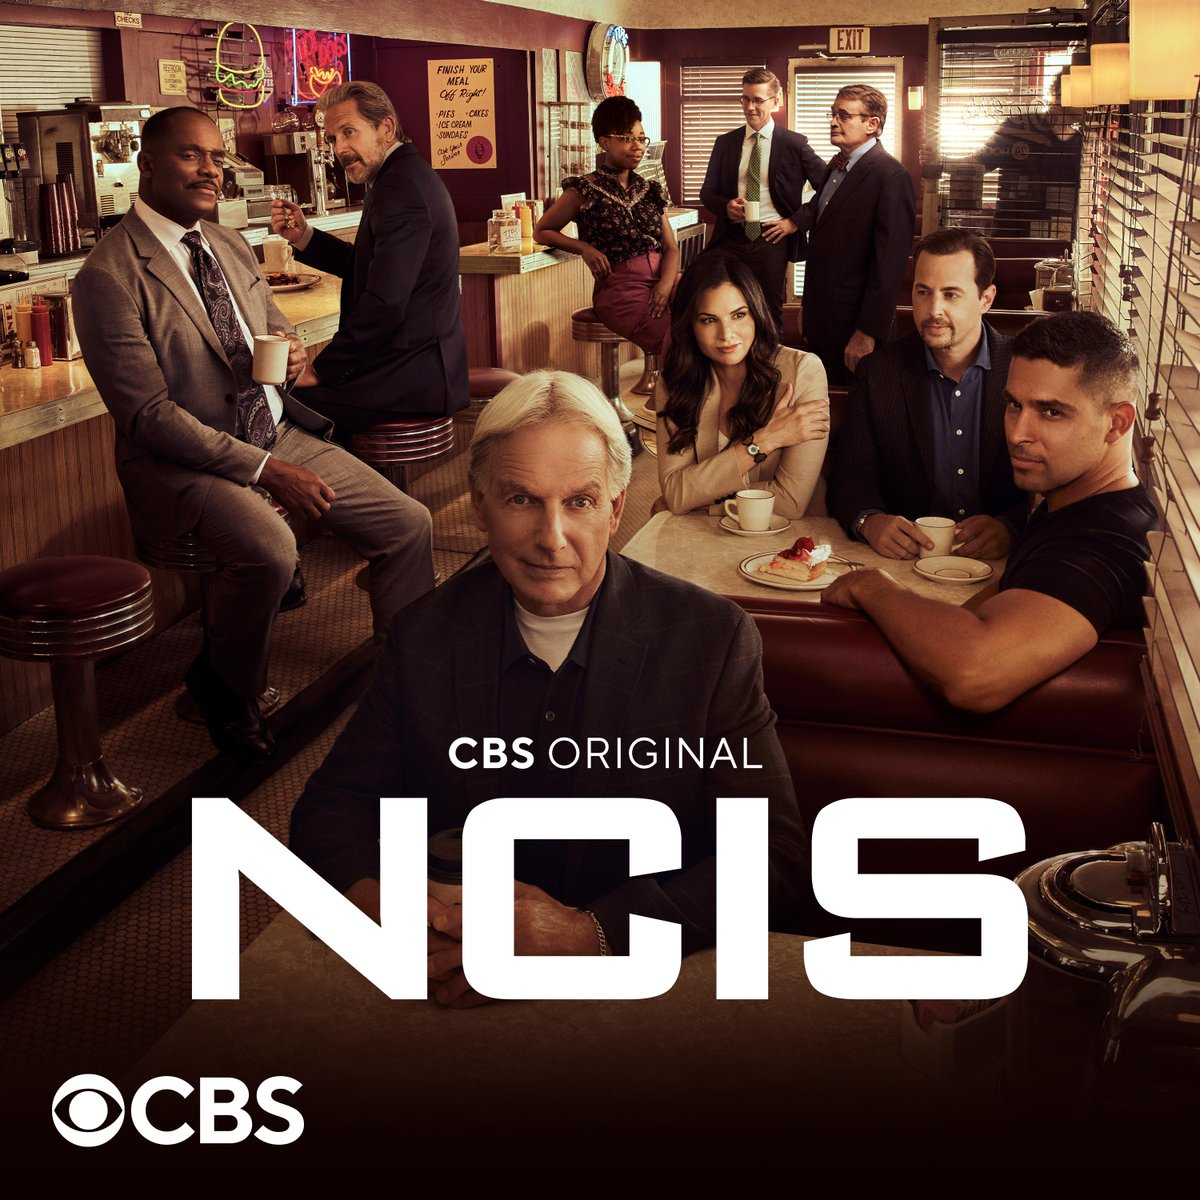 We think it's about time this diner had a name. Grab a cup of coffee at Elaine's Diner. ☕ #NCIS